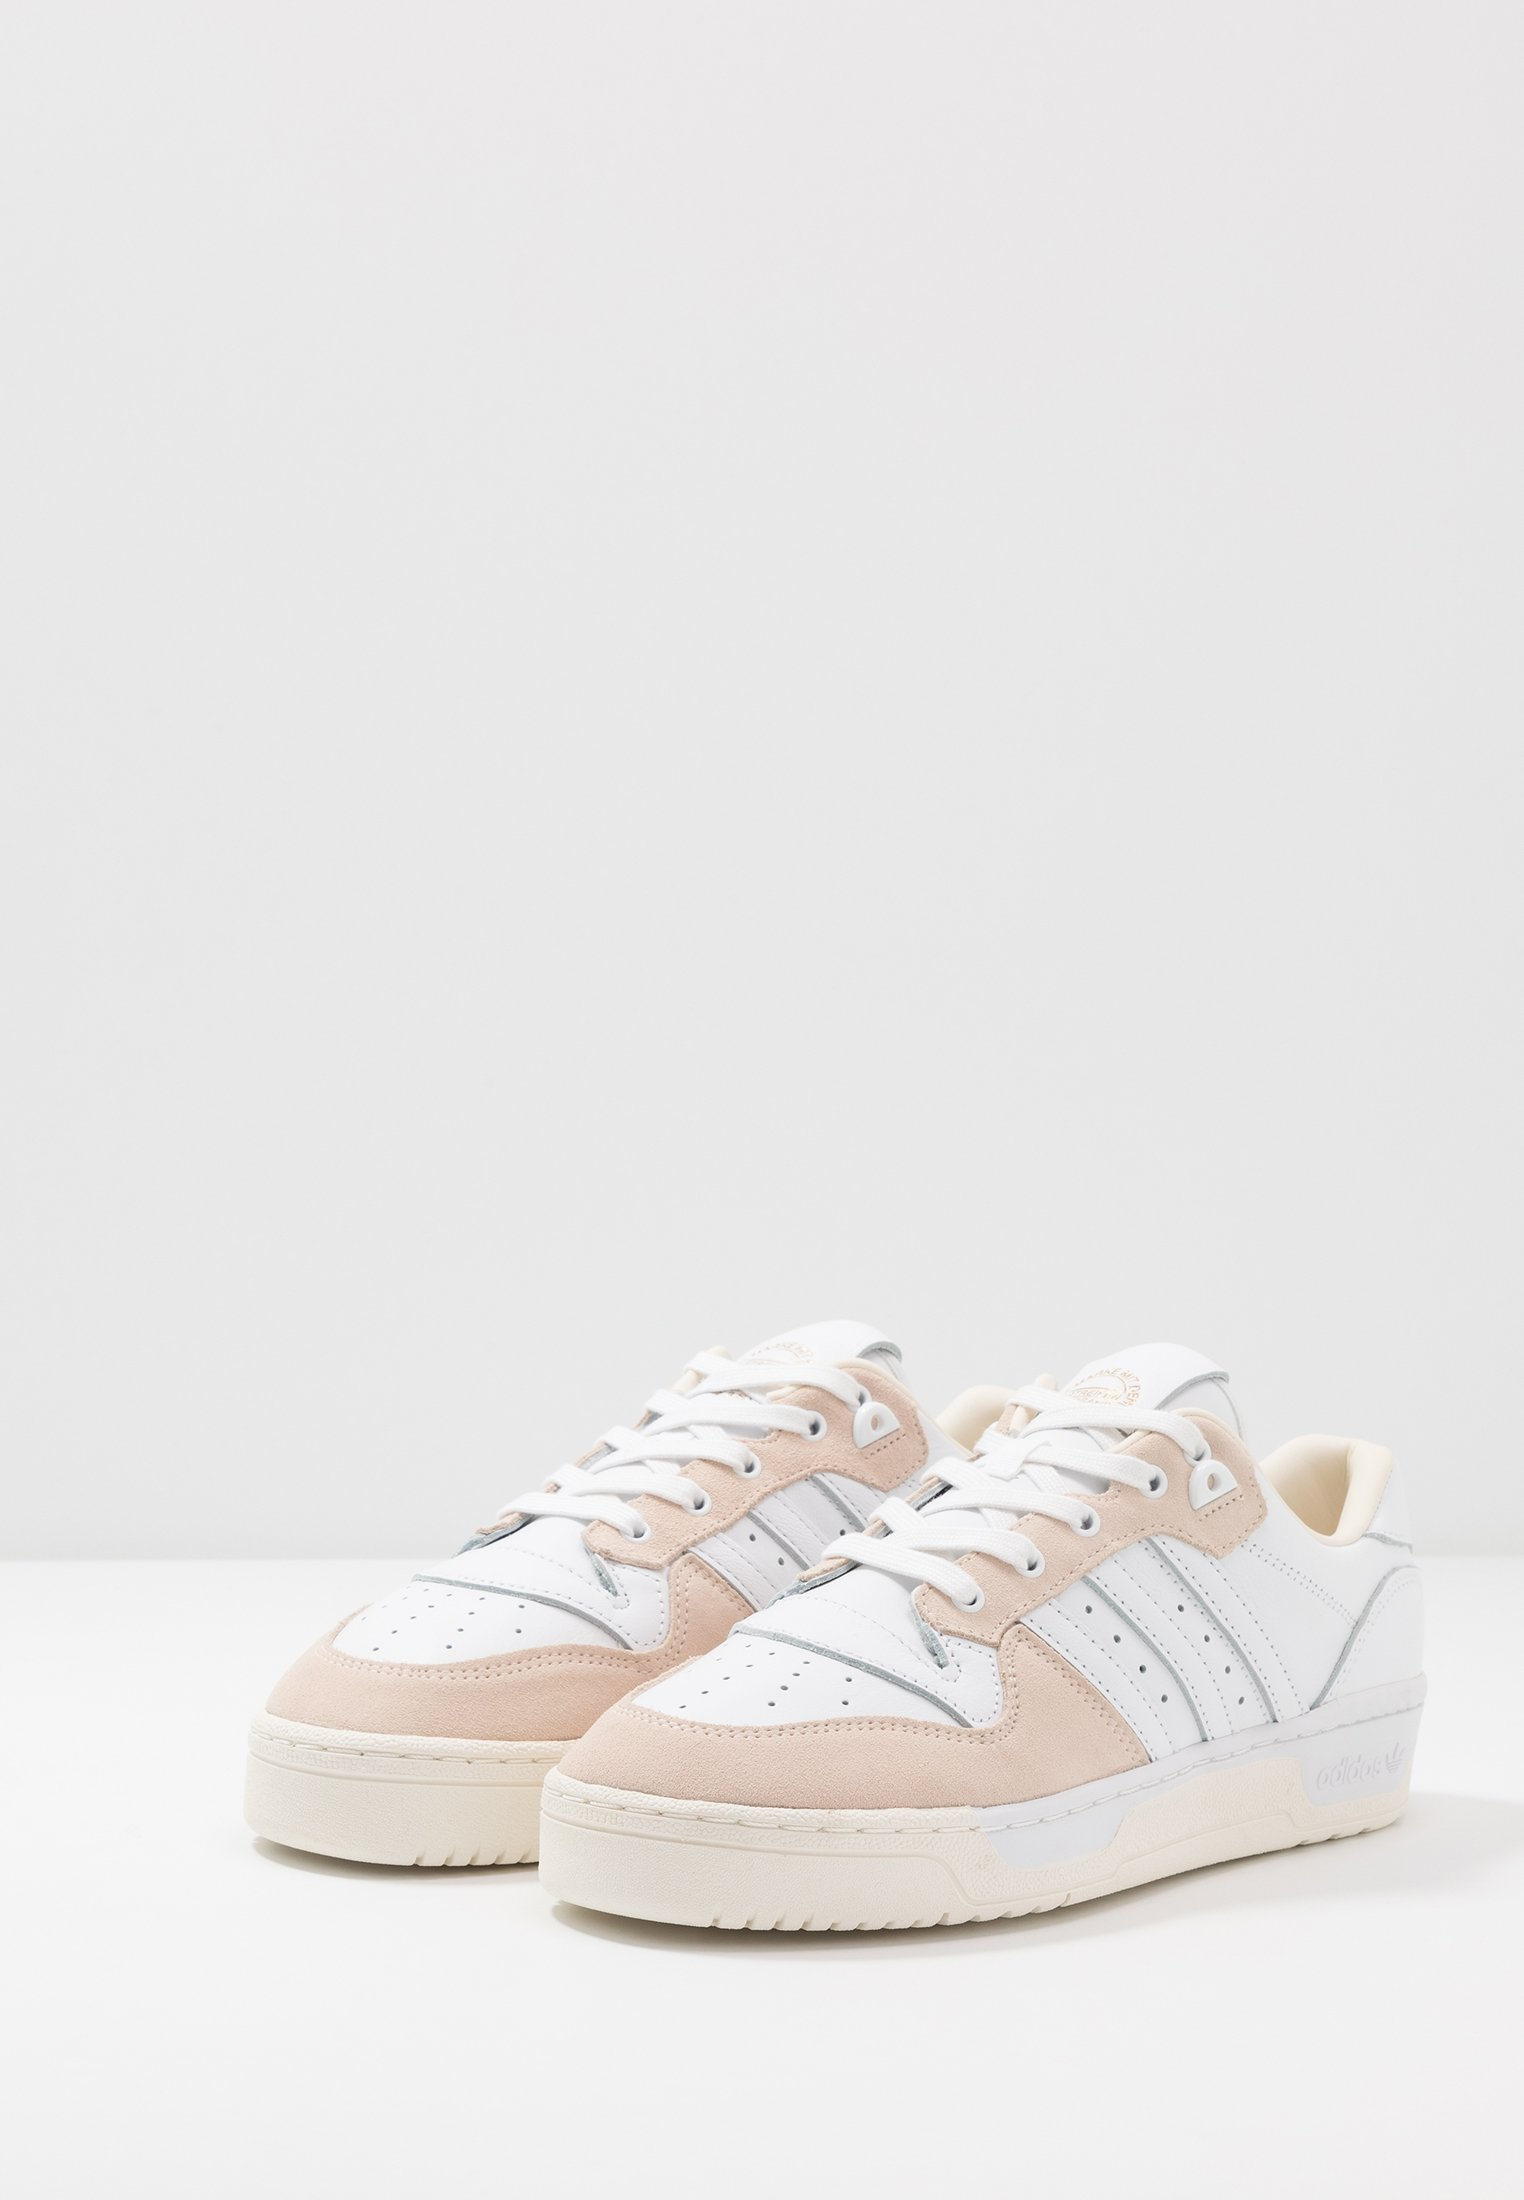 adidas Originals RIVALRY - Sneaker low - footwear white/offwhite - Black Friday